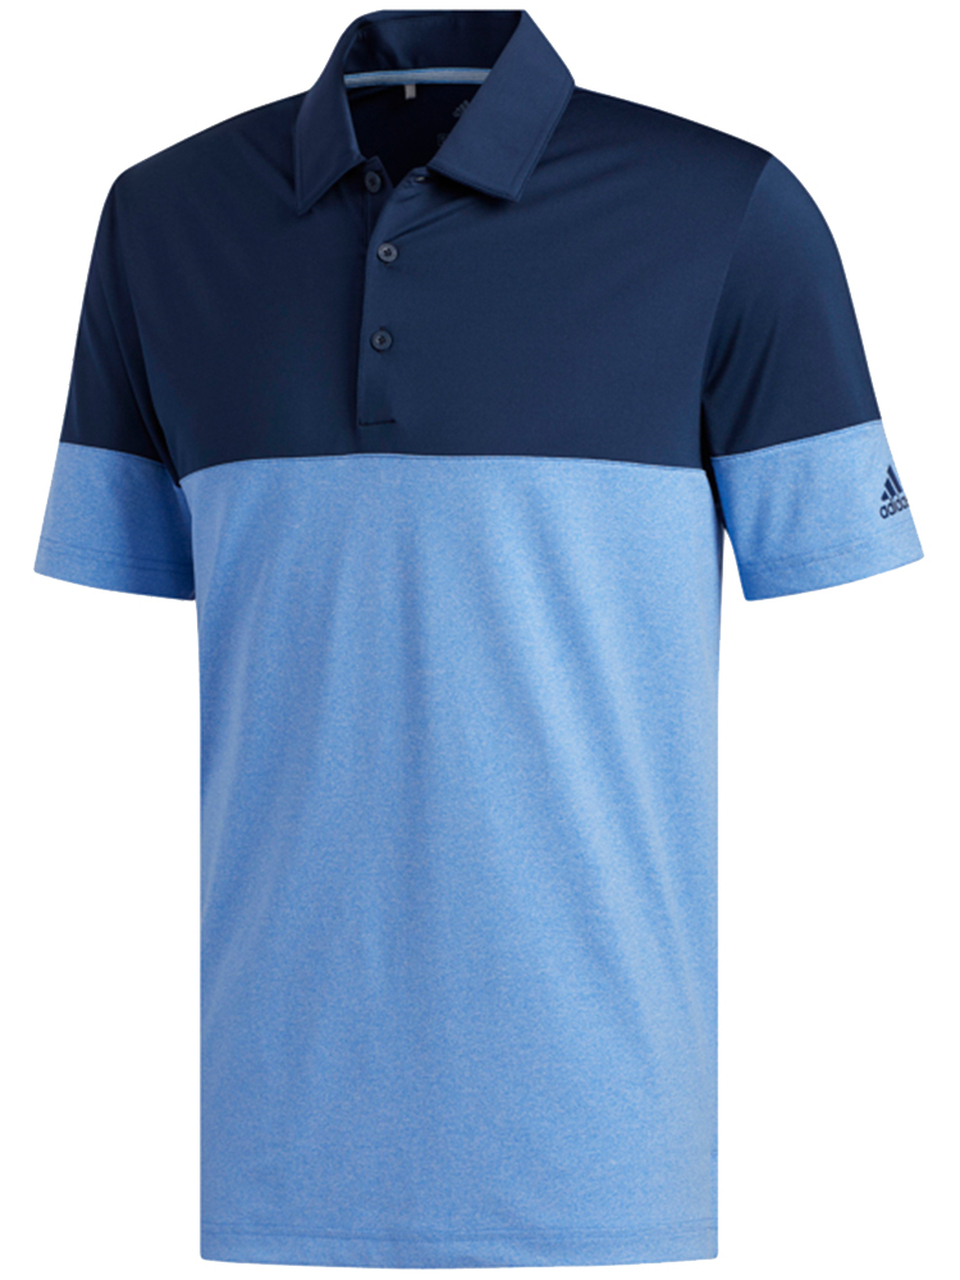 ded93483 Adidas Ultimate 2.0 Allday Novelty Polo - True Blue/Col Navy - Mens For  Sale | GolfBox